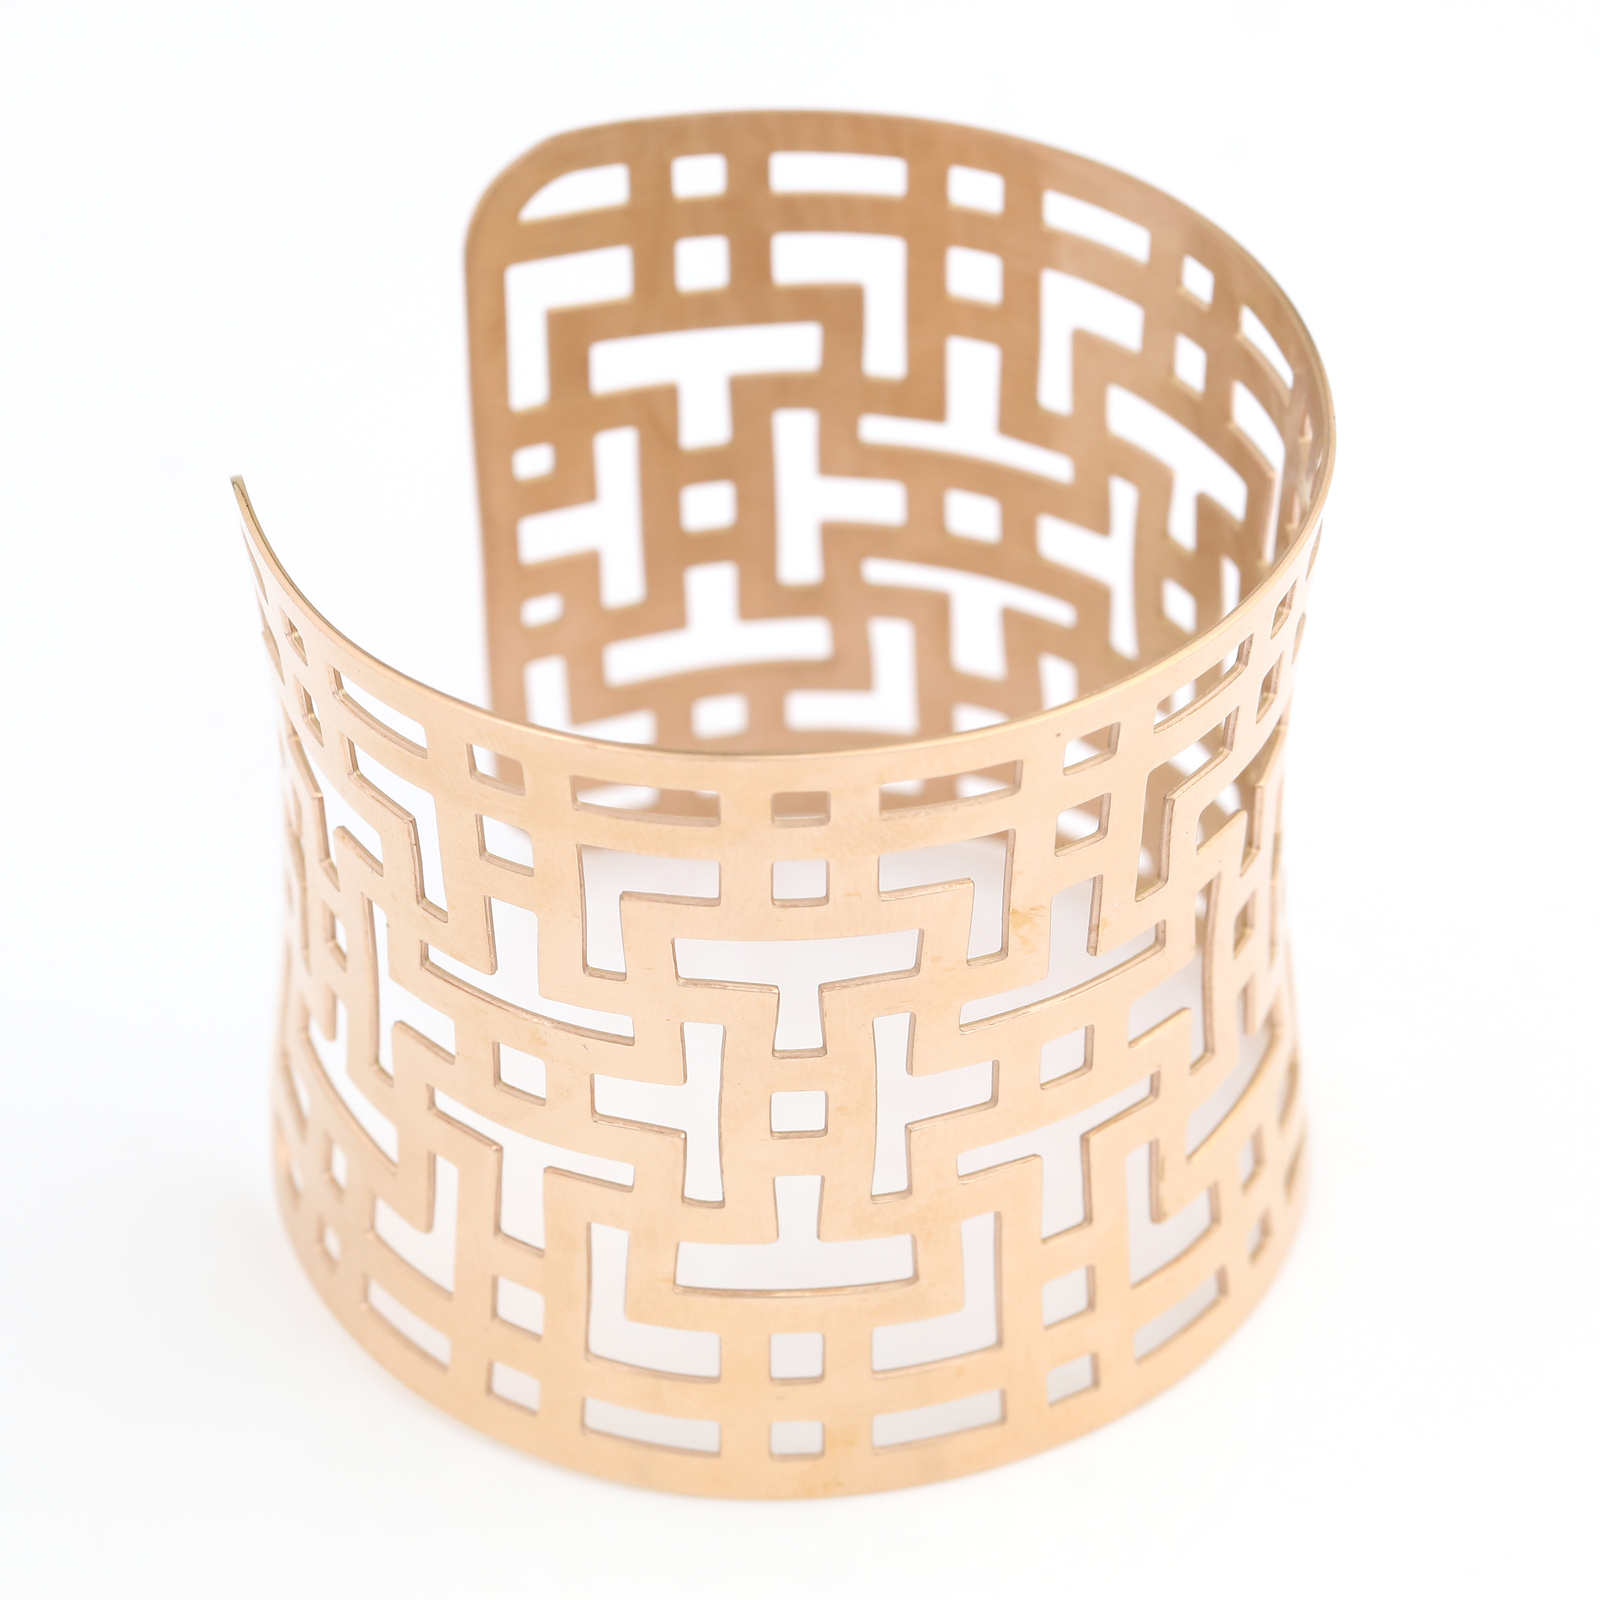 UNITED ELEGANCE Contemporary Rose Gold Tone Cuff Bracelet With Cut Out Design